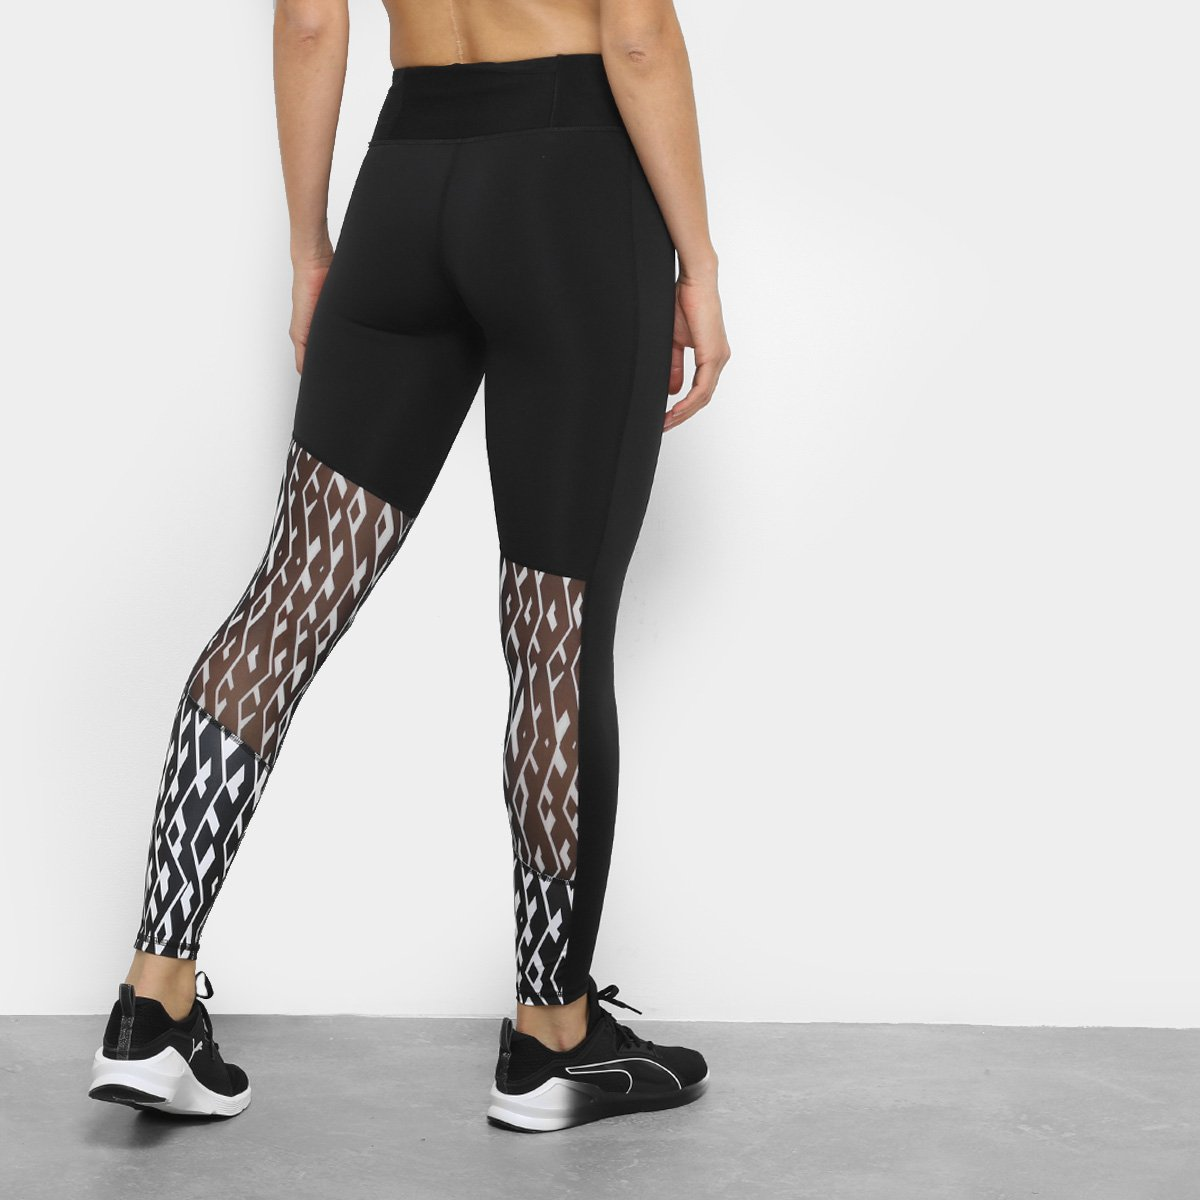 On Legging Preto Calça 8 Always Branco Feminina Graphic Puma e 7 ZBppqnta